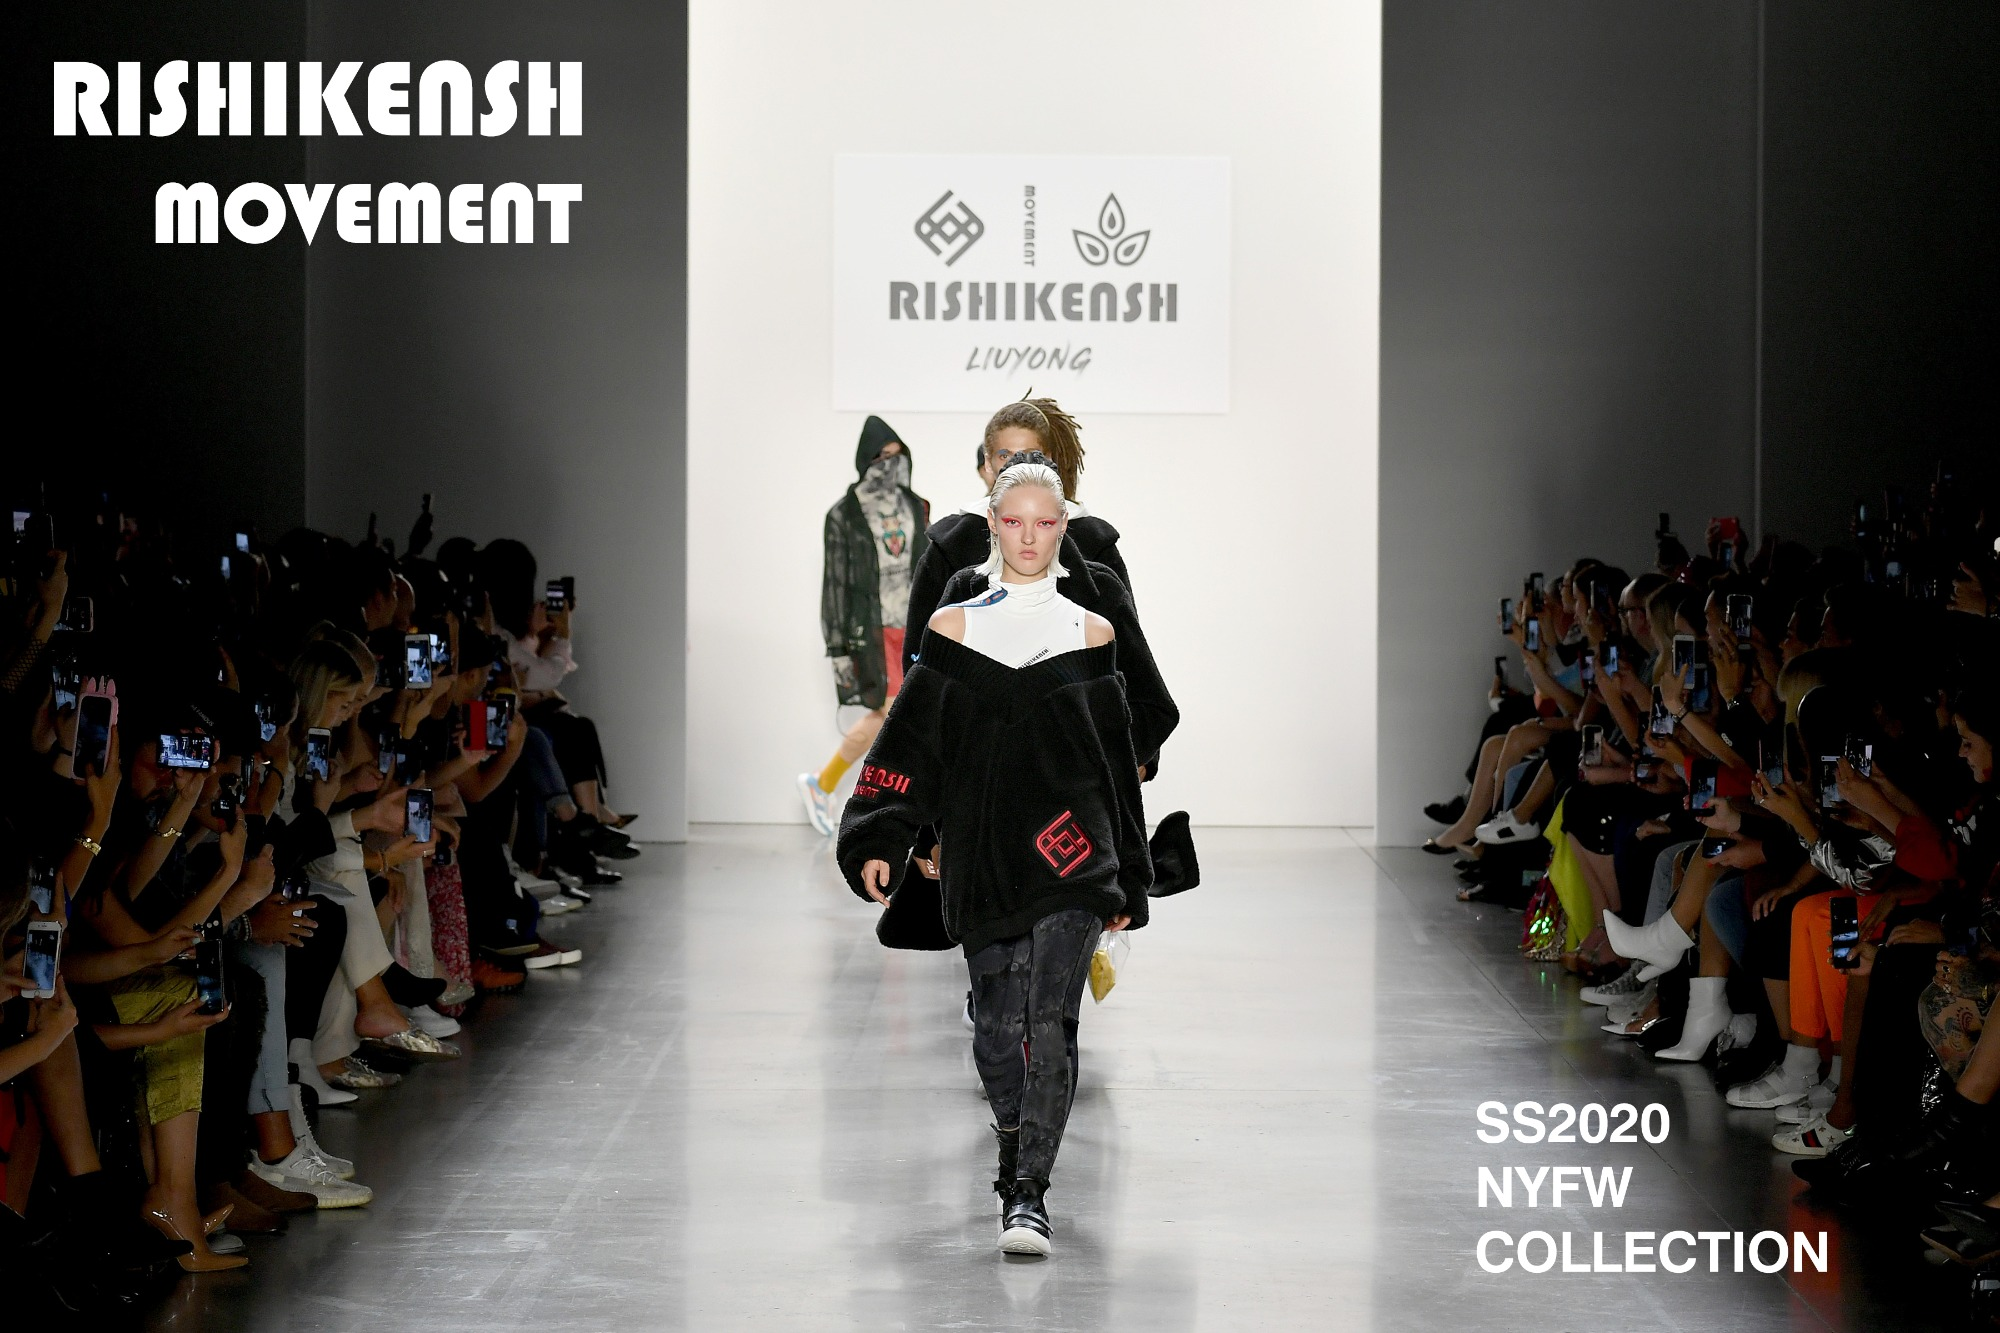 LIUYONG X RISHIKENSH Fashion Show Successfully Held at NYFW